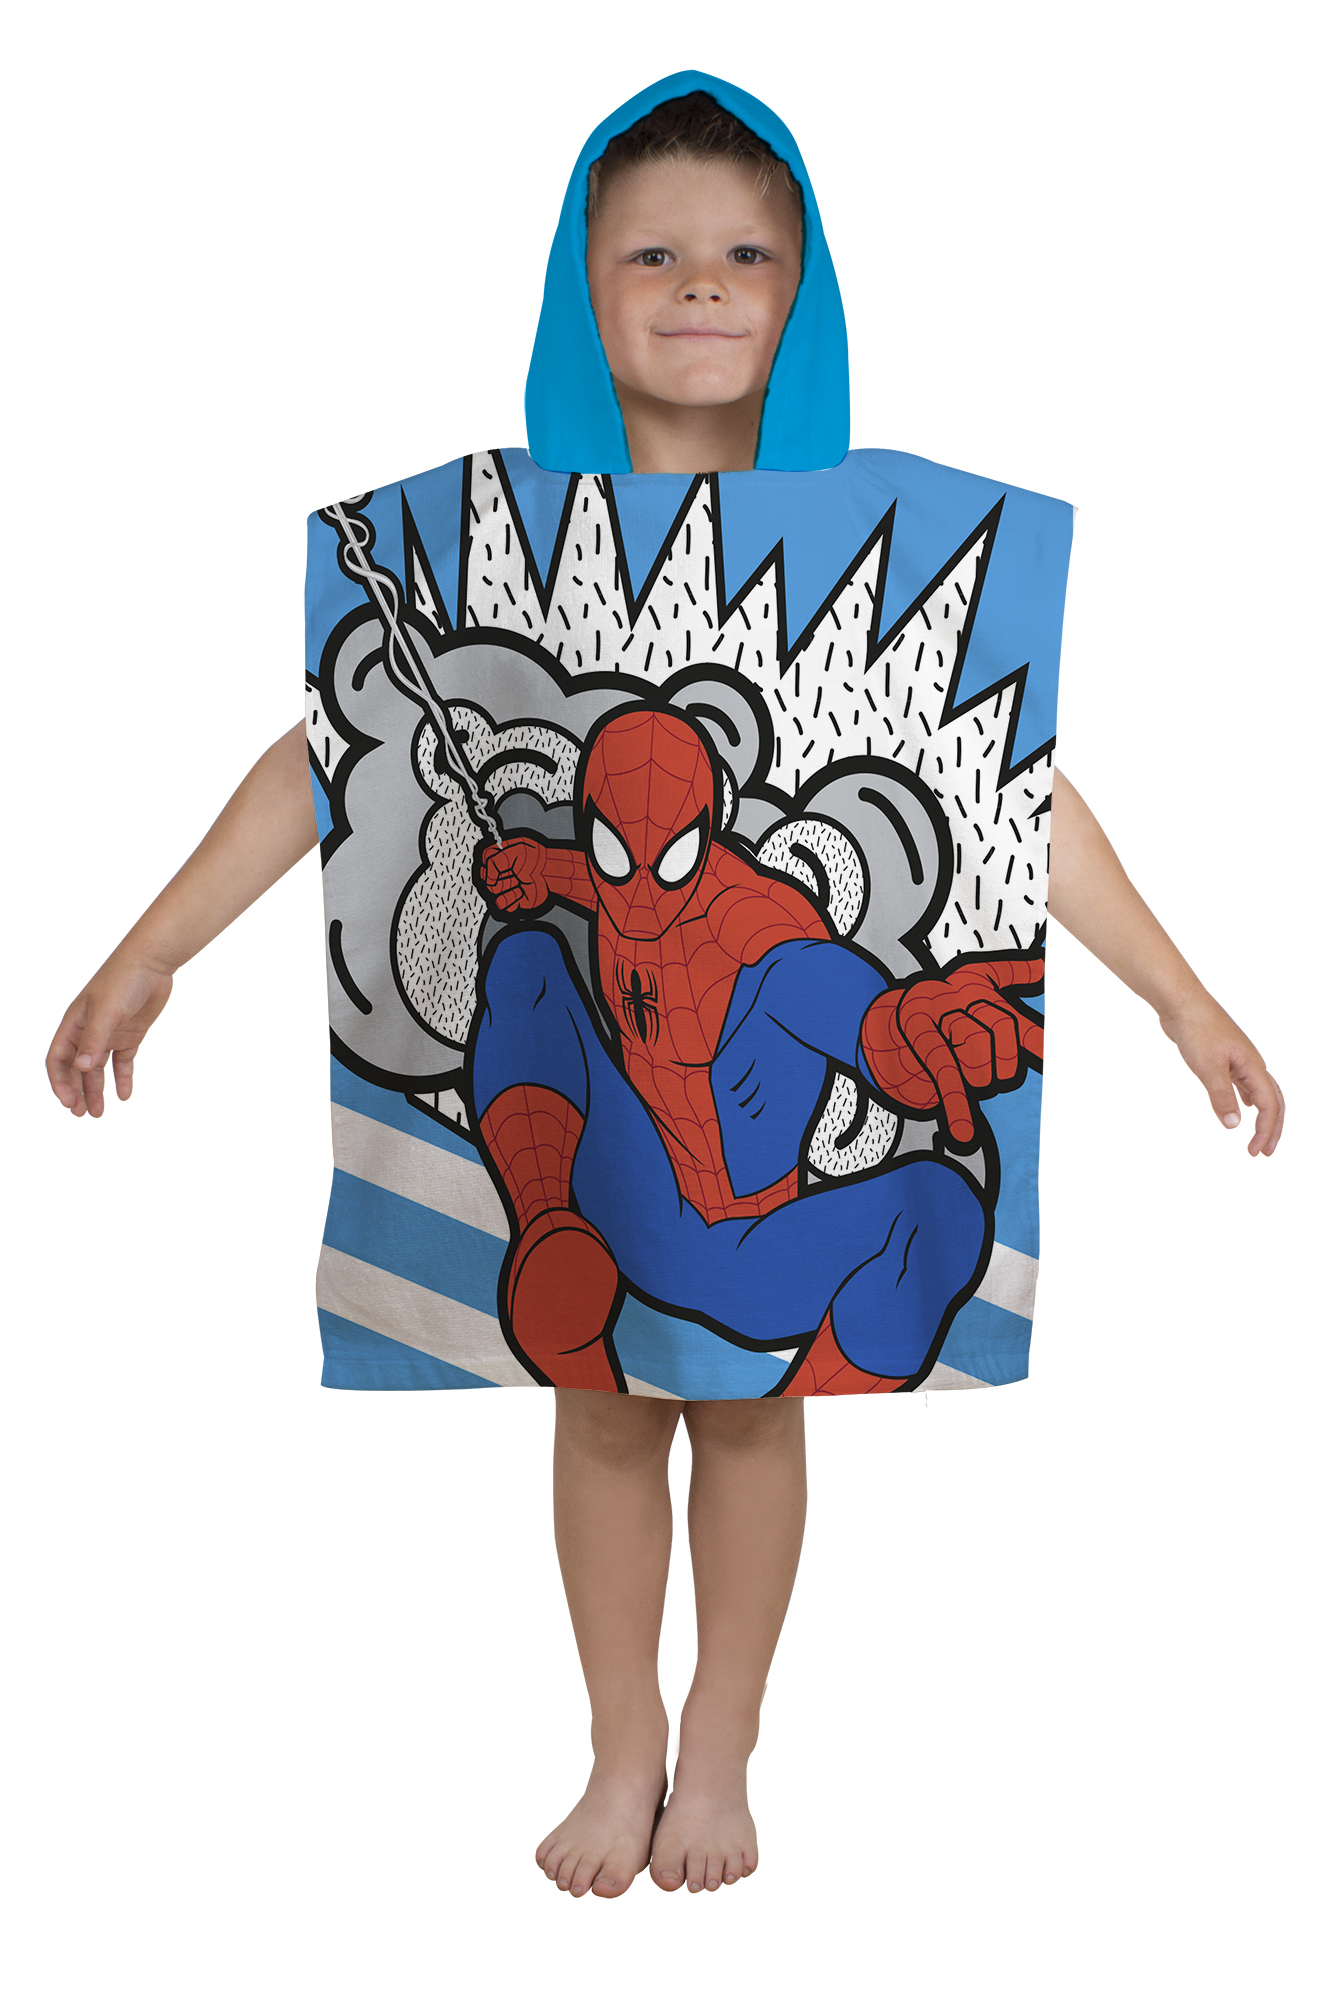 neu spiderman 39 abstrakt 39 kapuzen poncho handtuch strandbad jungen kinder ebay. Black Bedroom Furniture Sets. Home Design Ideas